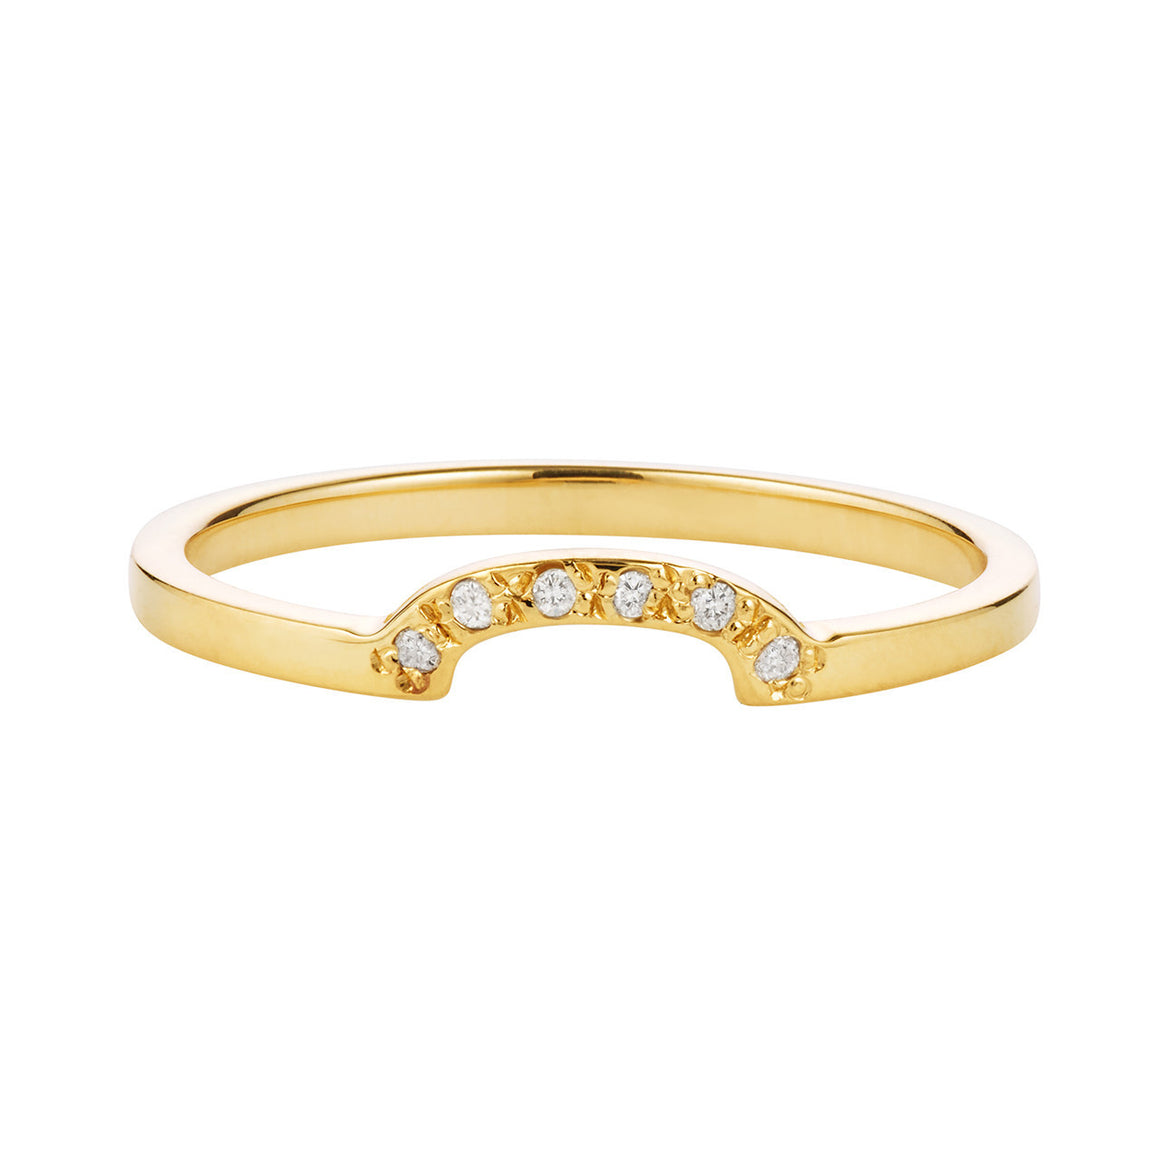 18K Half Moon Diamond Band - KESTREL